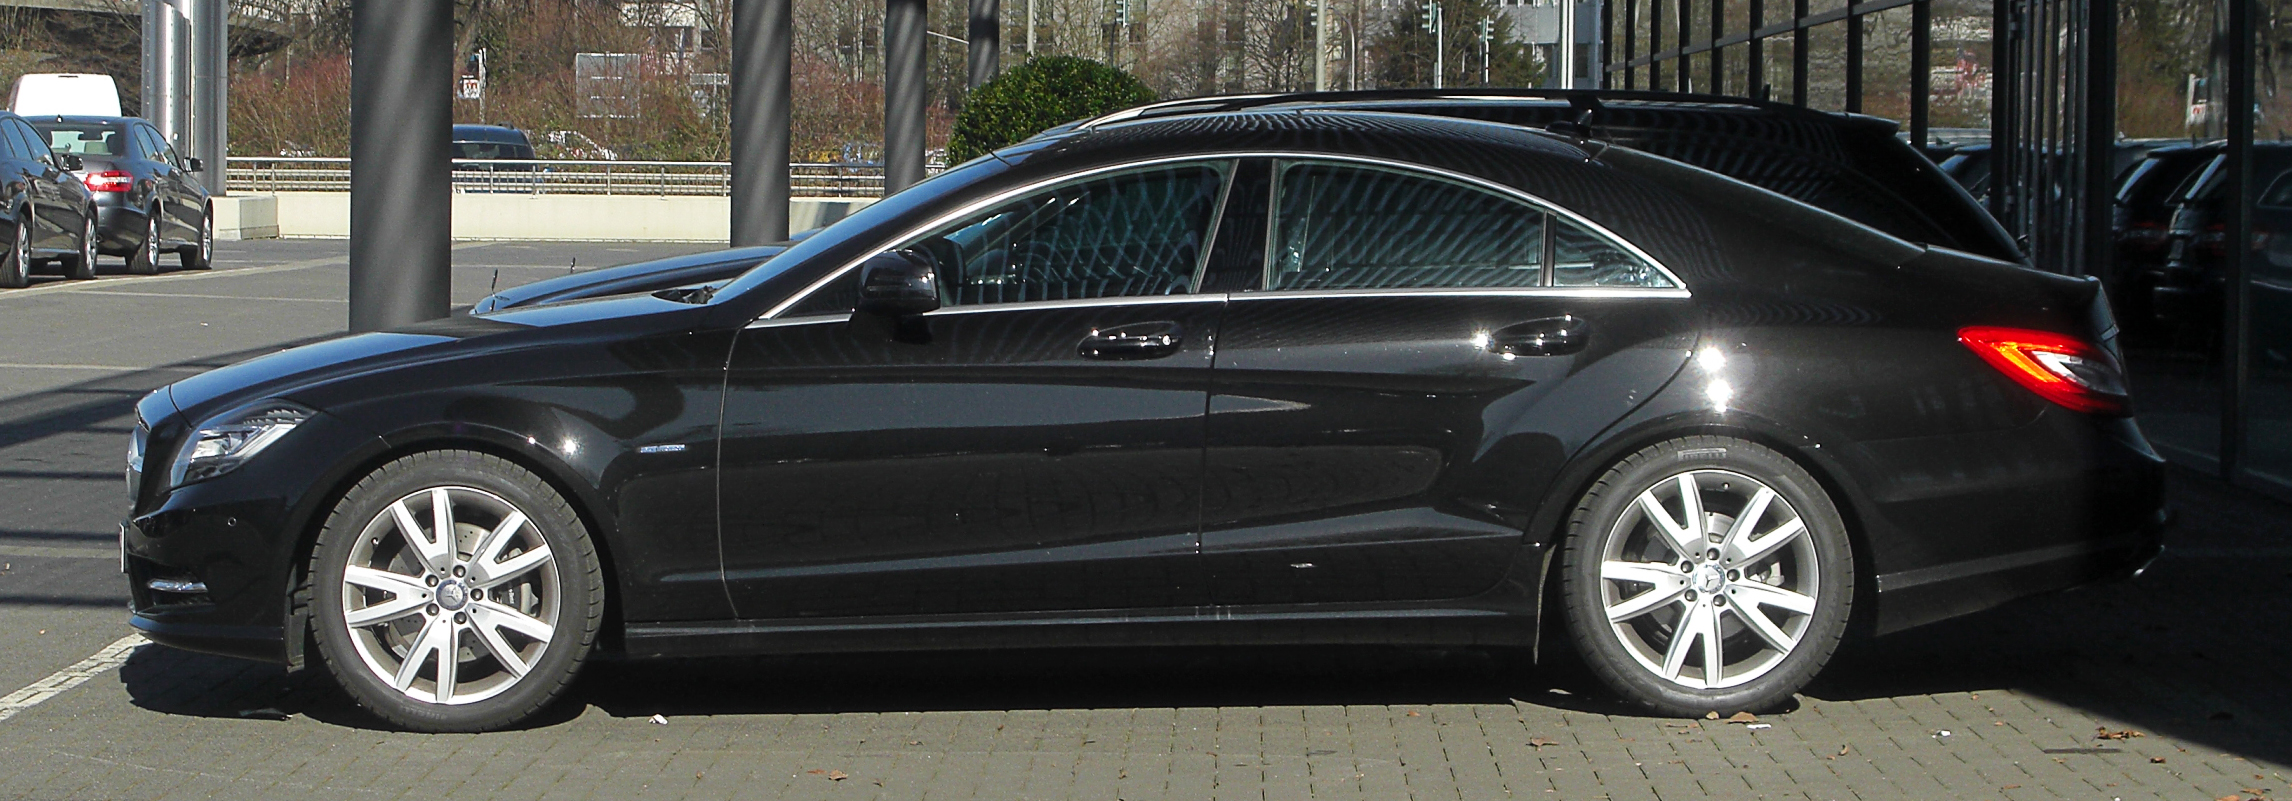 File Mercedes Benz Cls 350 Blueefficiency Sport Paket Amg